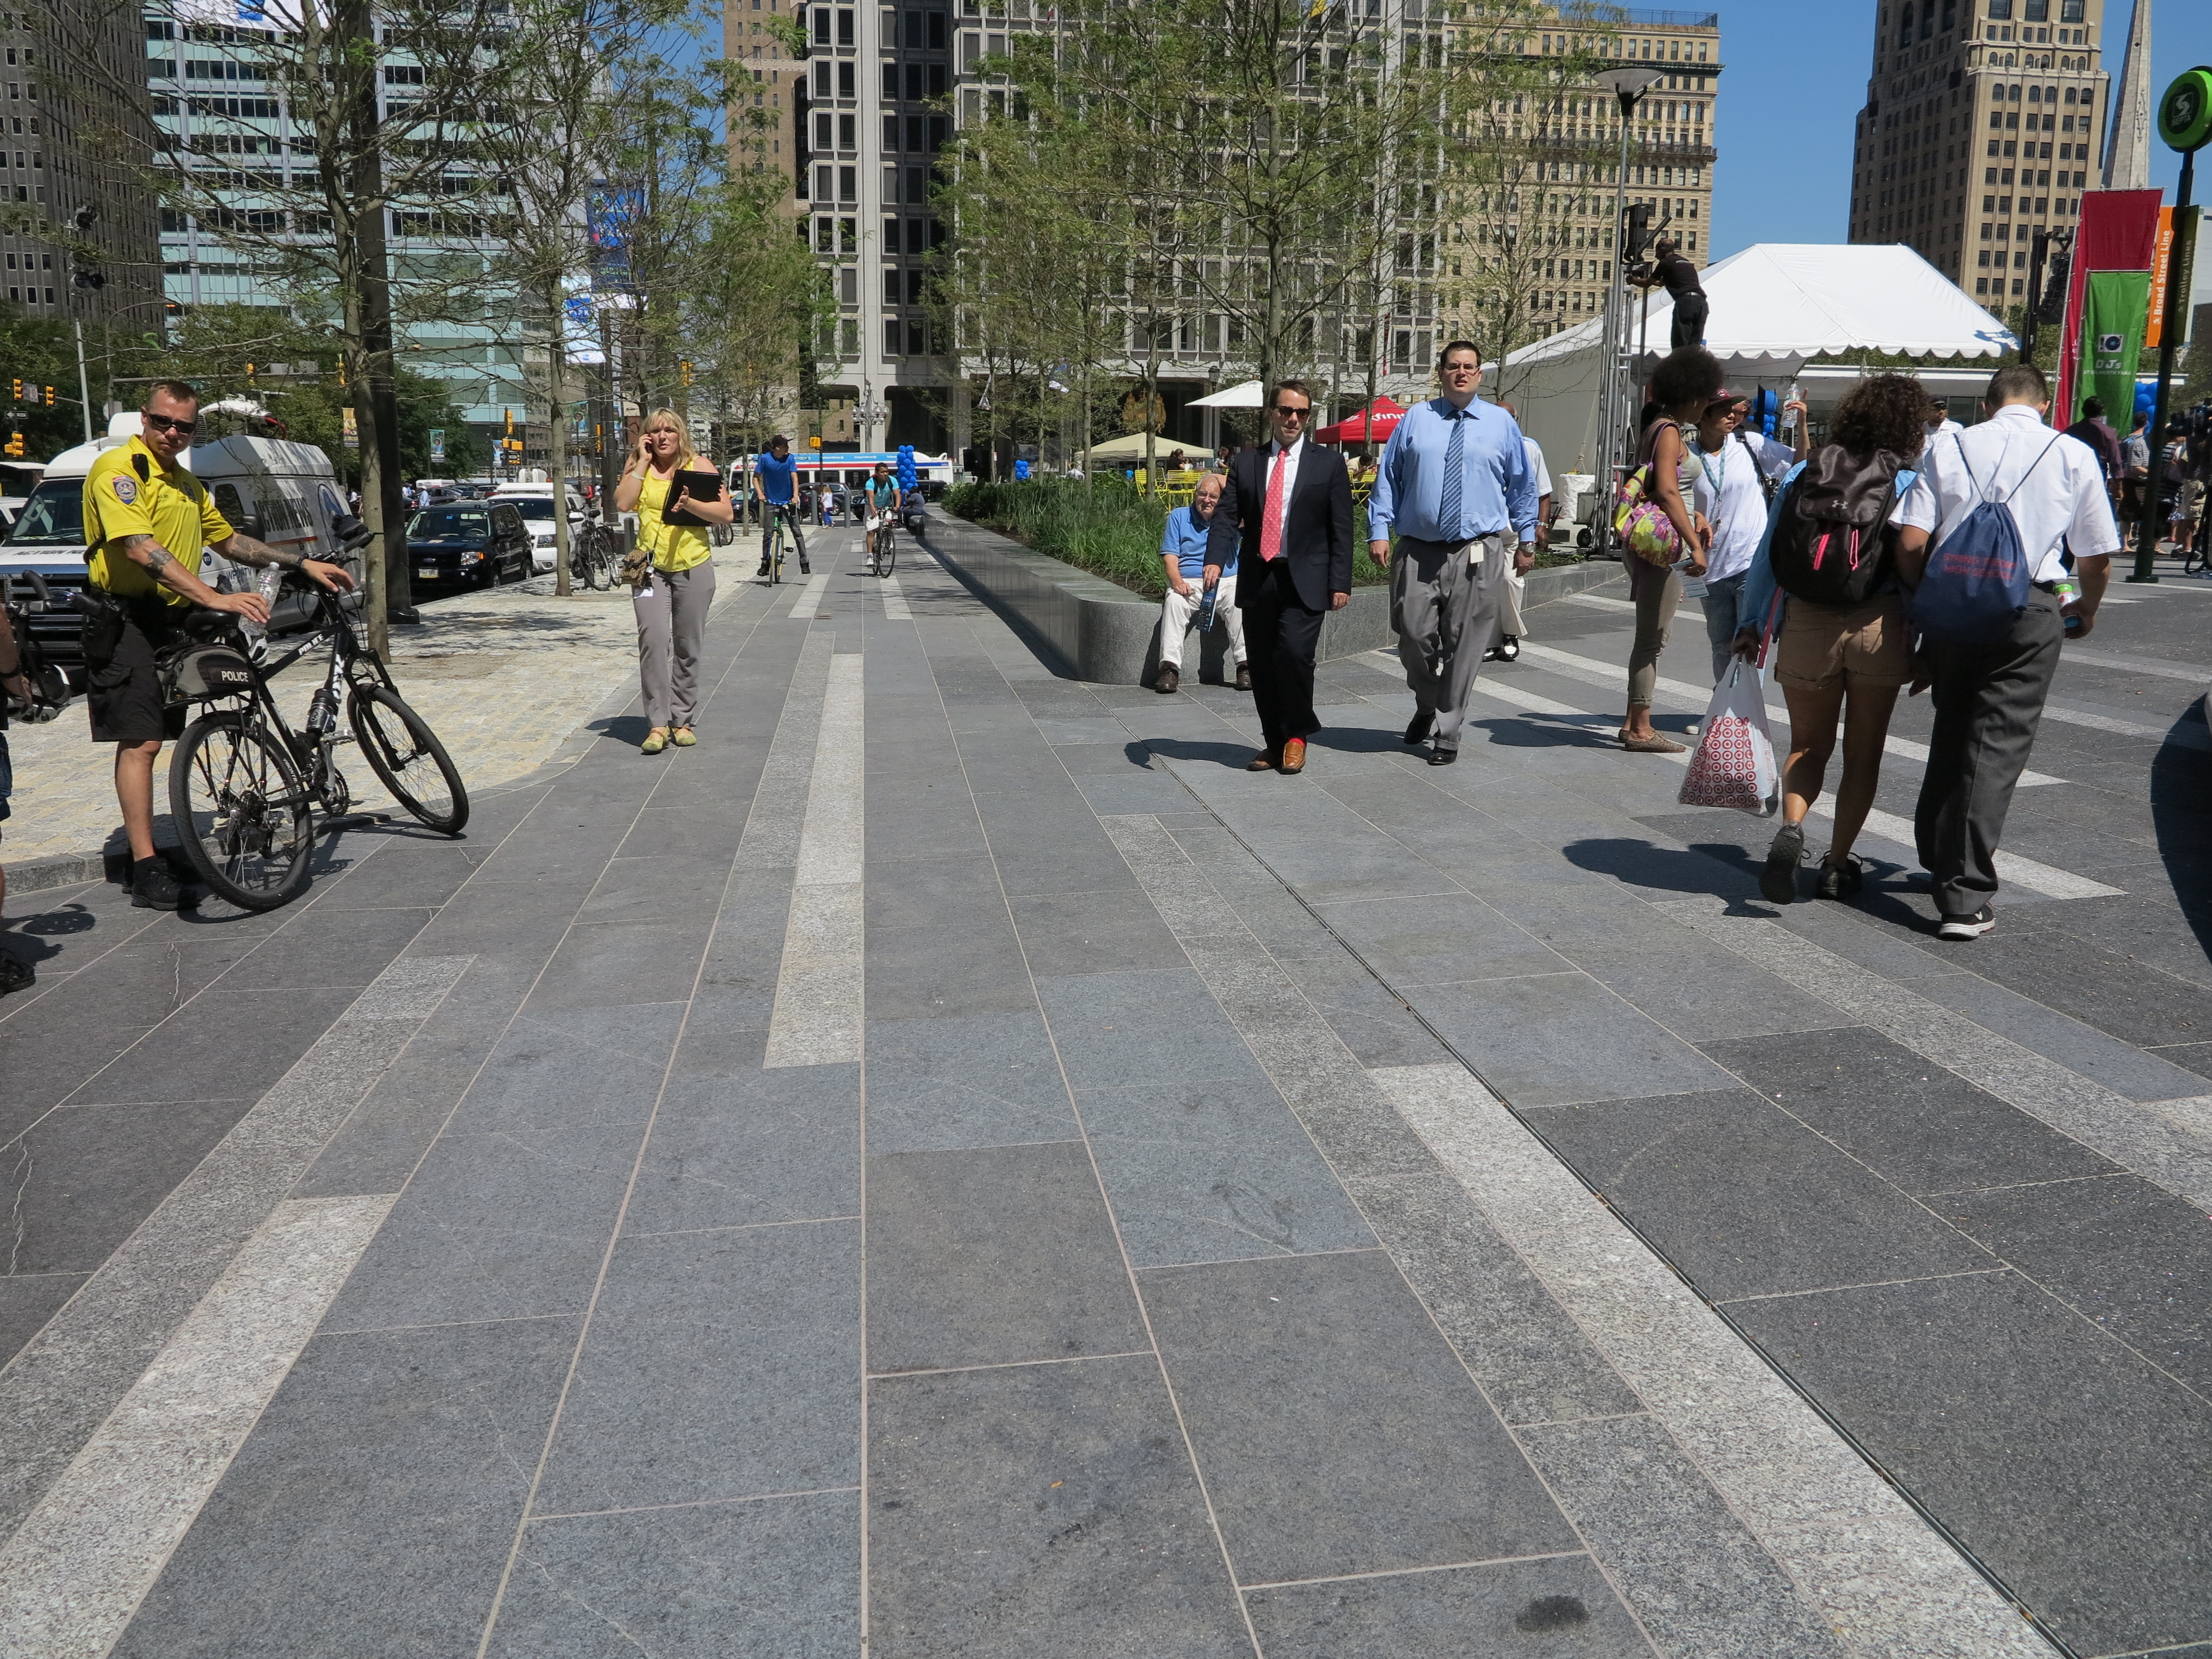 Bands of granite in different tones and textures at Dilworth Park